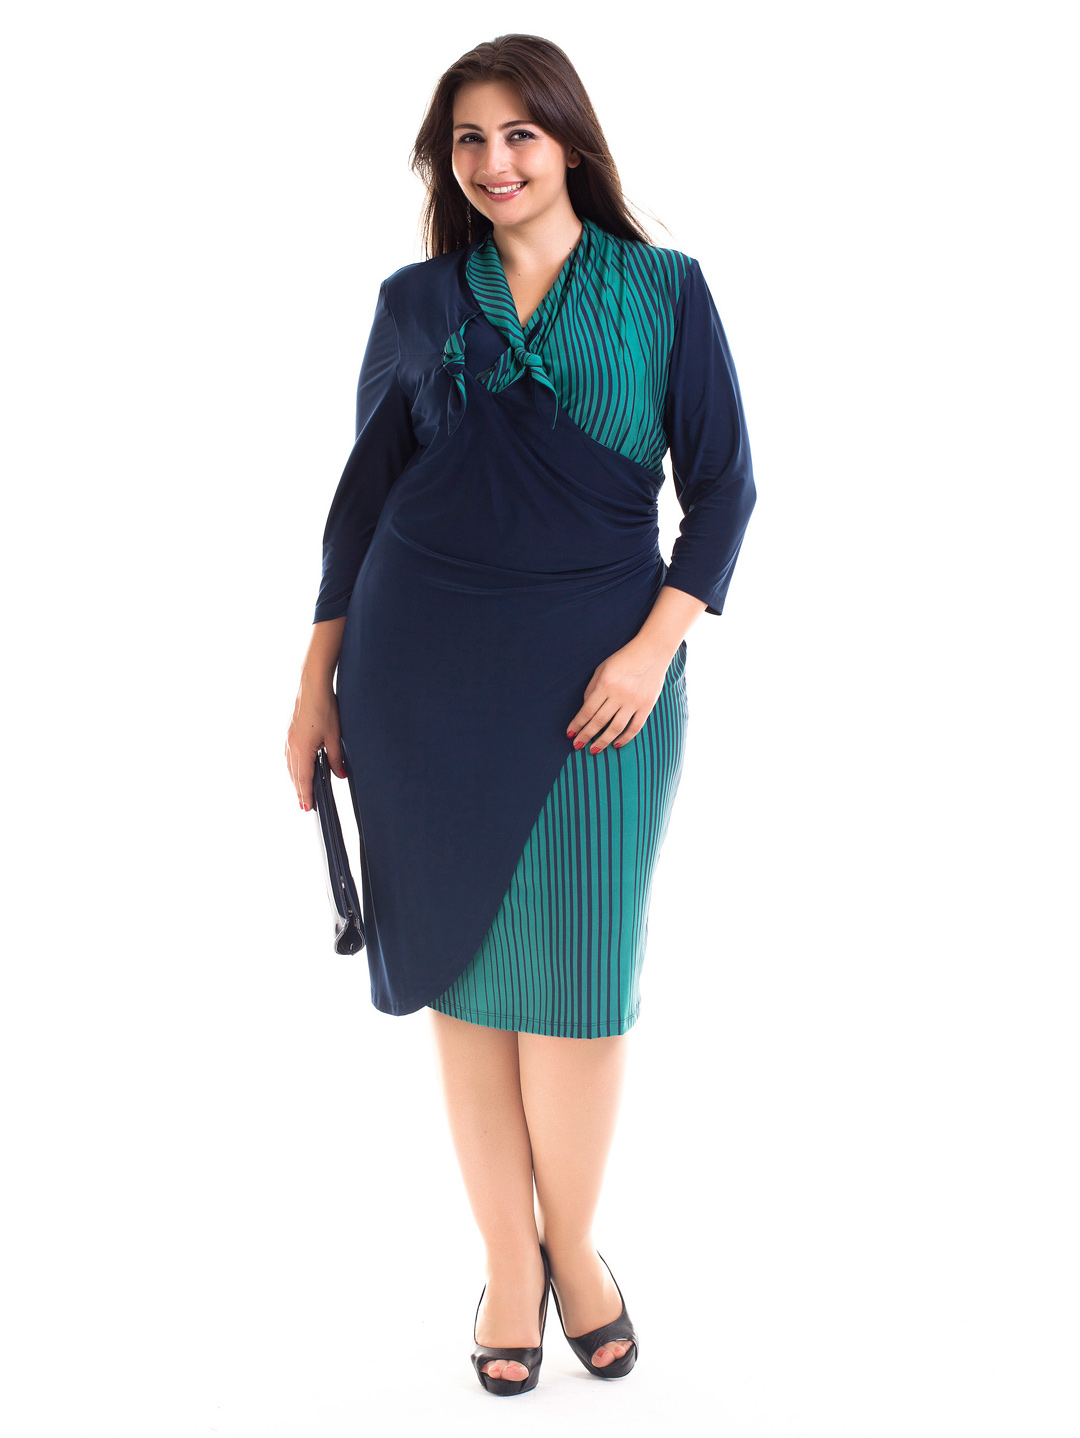 Plus Size Dresses Collection 2013 | Plus Size Party ...